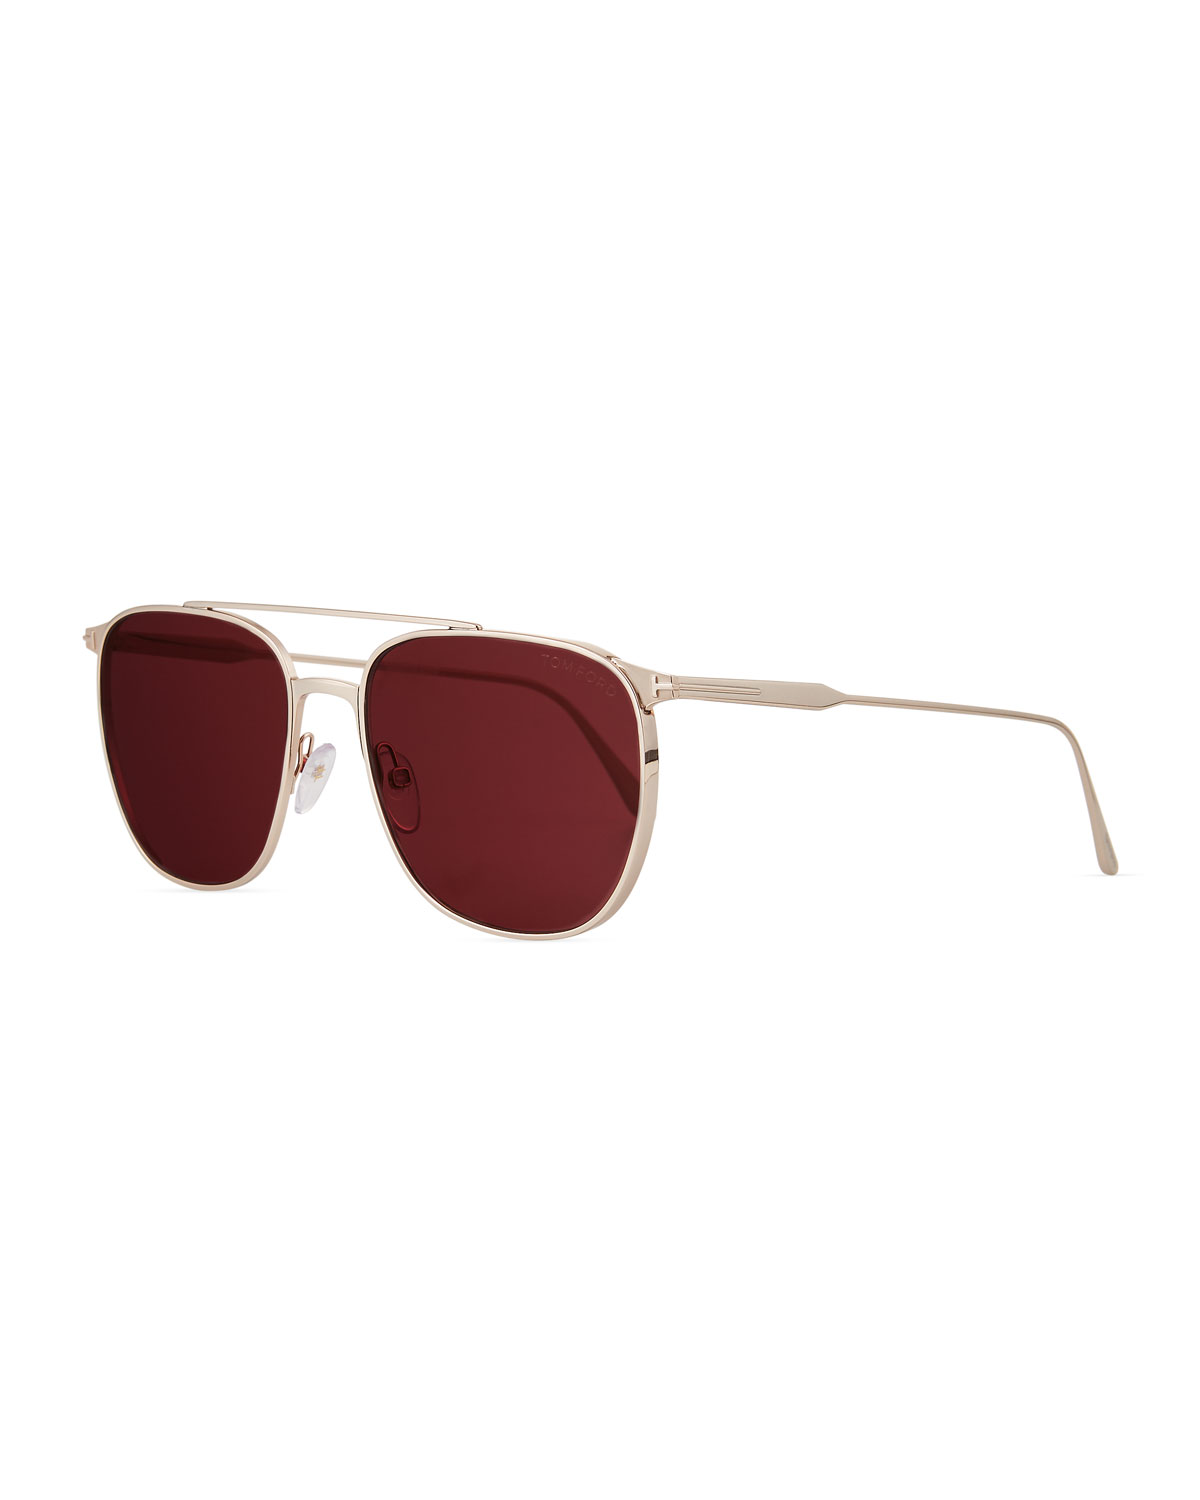 dfe2af56879a TOM FORD Men s Kip Square Metal Sunglasses